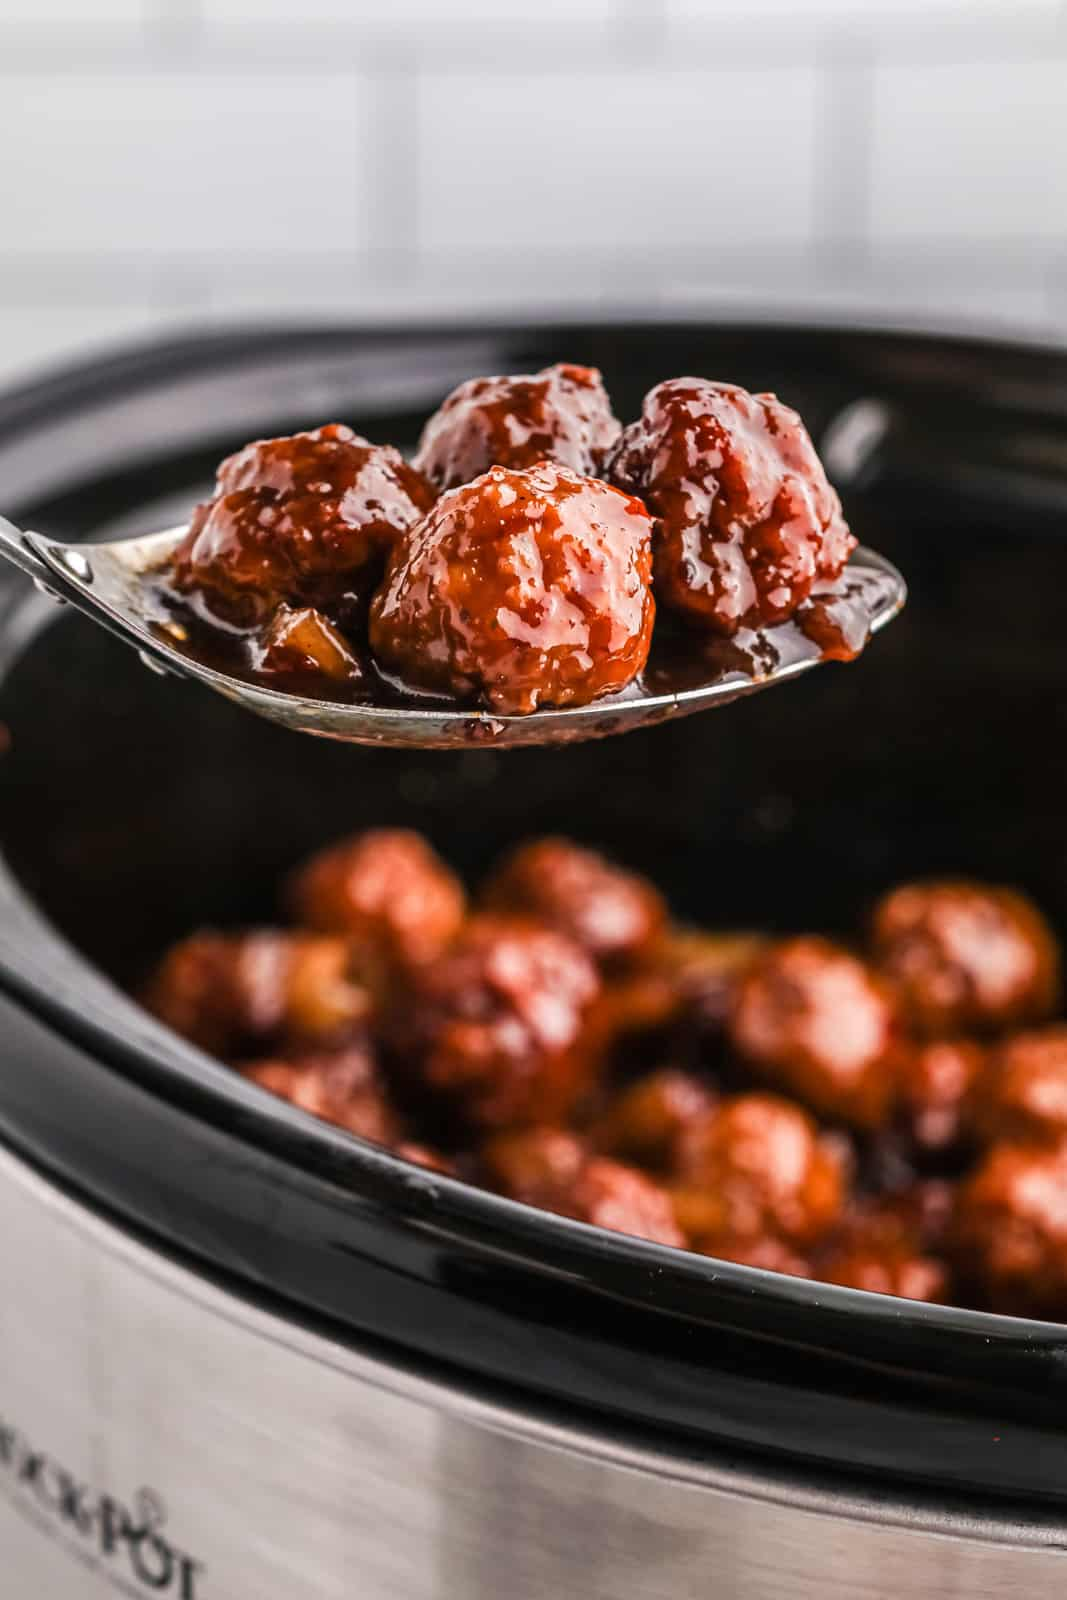 Spoon scooping some meatballs out of slow cooker